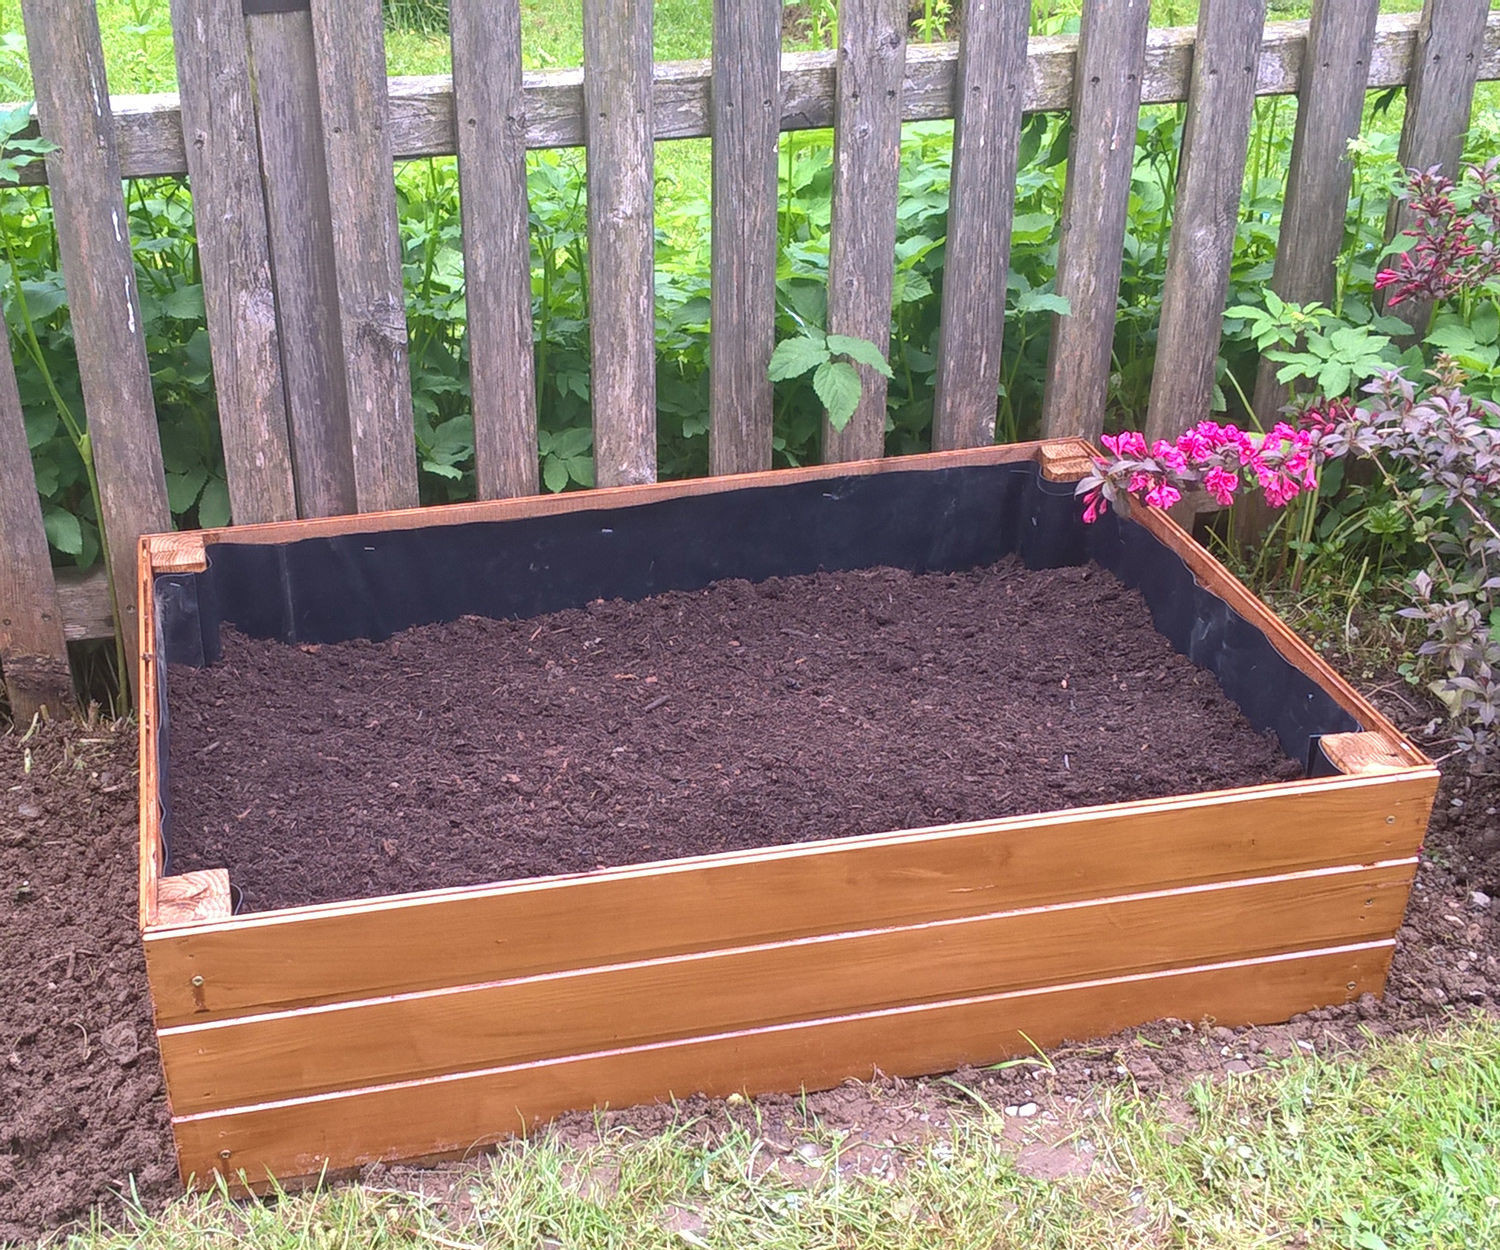 Best ideas about Raised Garden Planters . Save or Pin Wooden Raised Bed Garden Planter 5 Now.